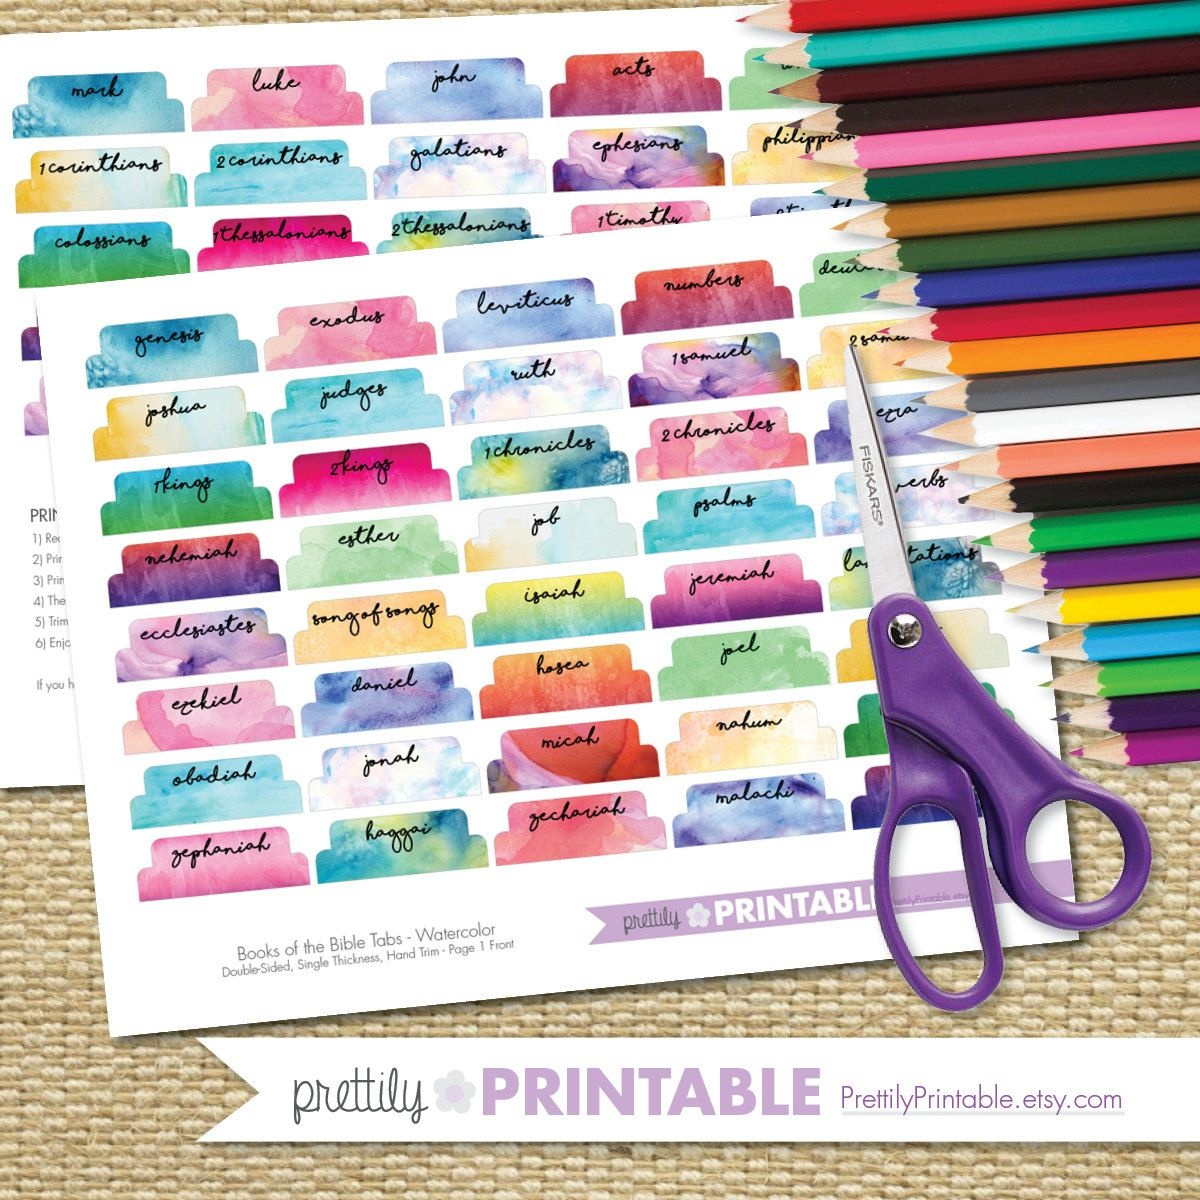 Printable Books Of The Bible Tabs - Watercolor (For Hand Trimming - Bible Tabs Printable Free